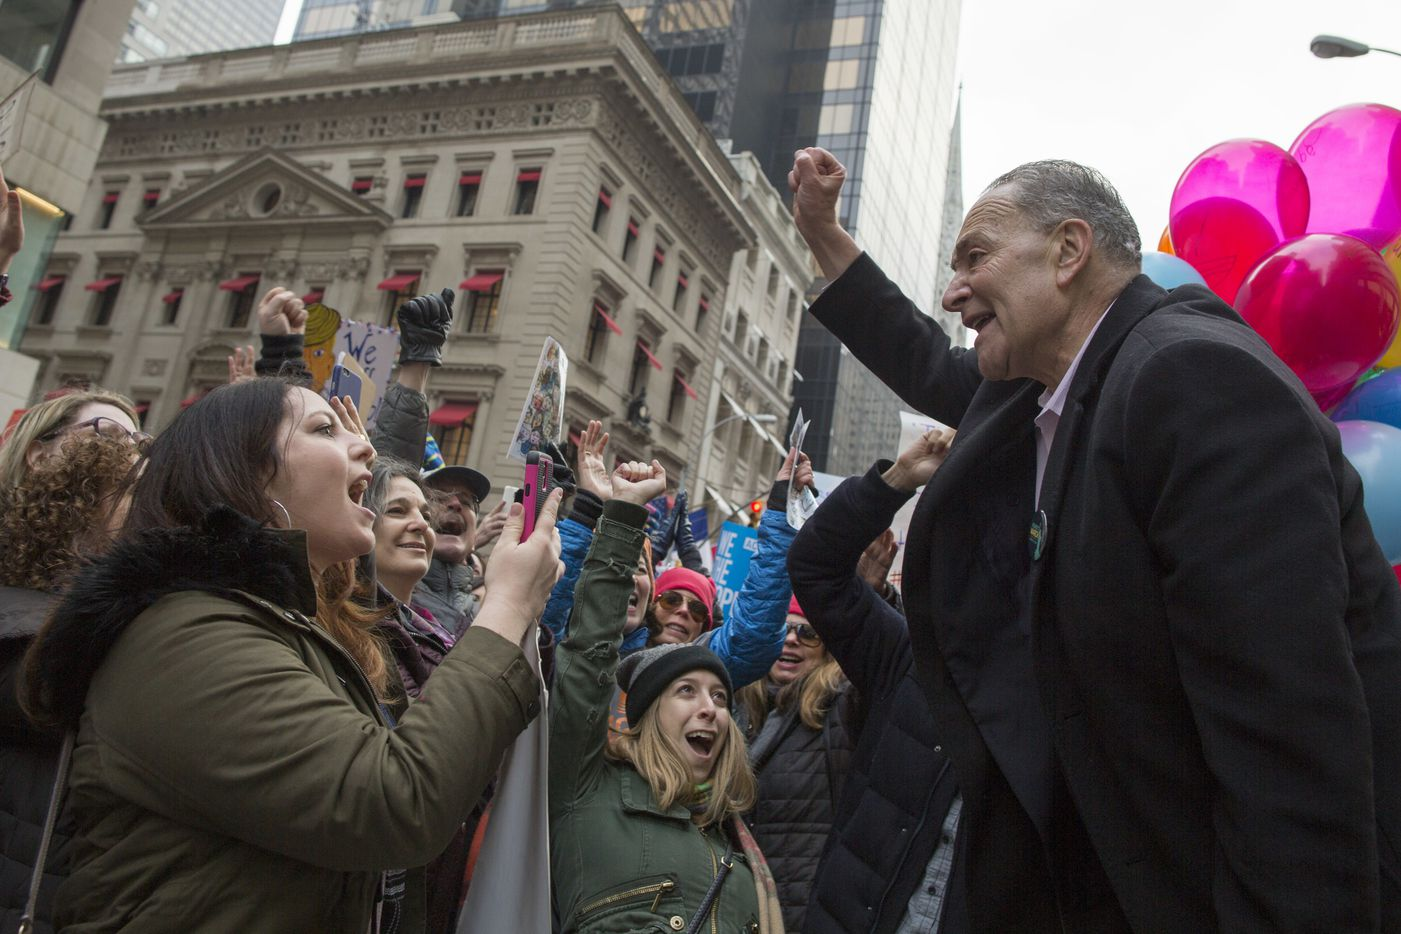 Senate Minority Leader Charles Schumer of N.Y, joins demonstrators marching up 5th Avenue during a women's march, Saturday, Jan. 21, 2017, in New York. The march is being held in solidarity with similar events taking place in Washington and around the nation.